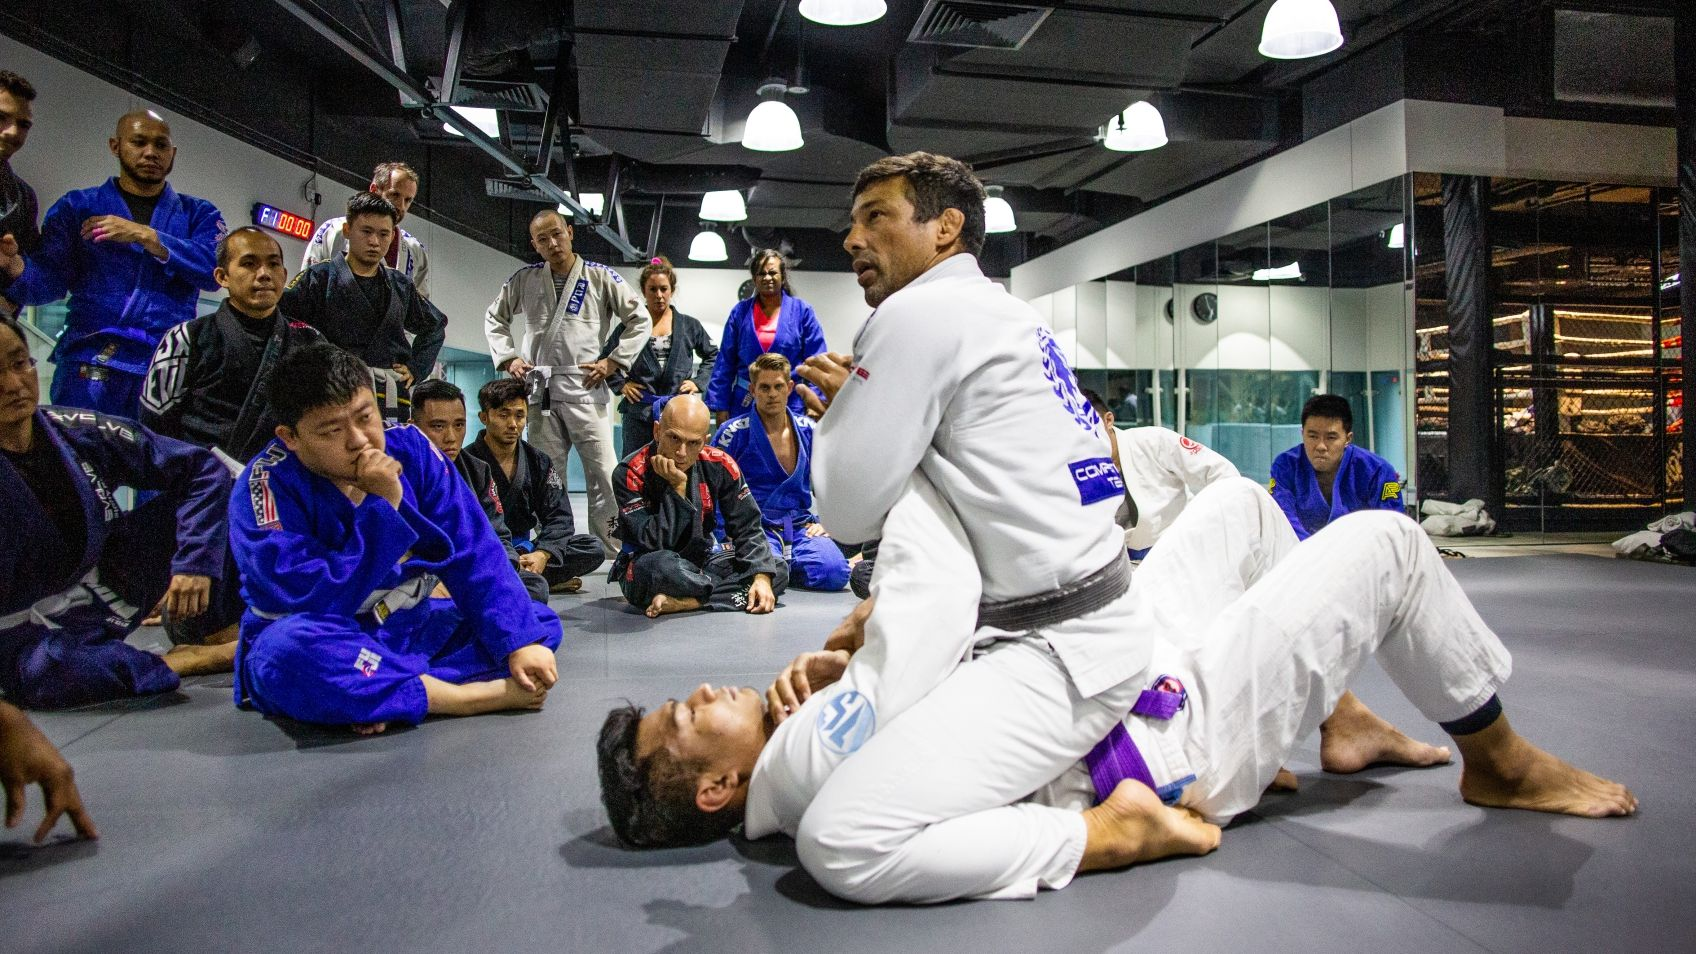 Teco Shinzato teaching a BJJ technique in class